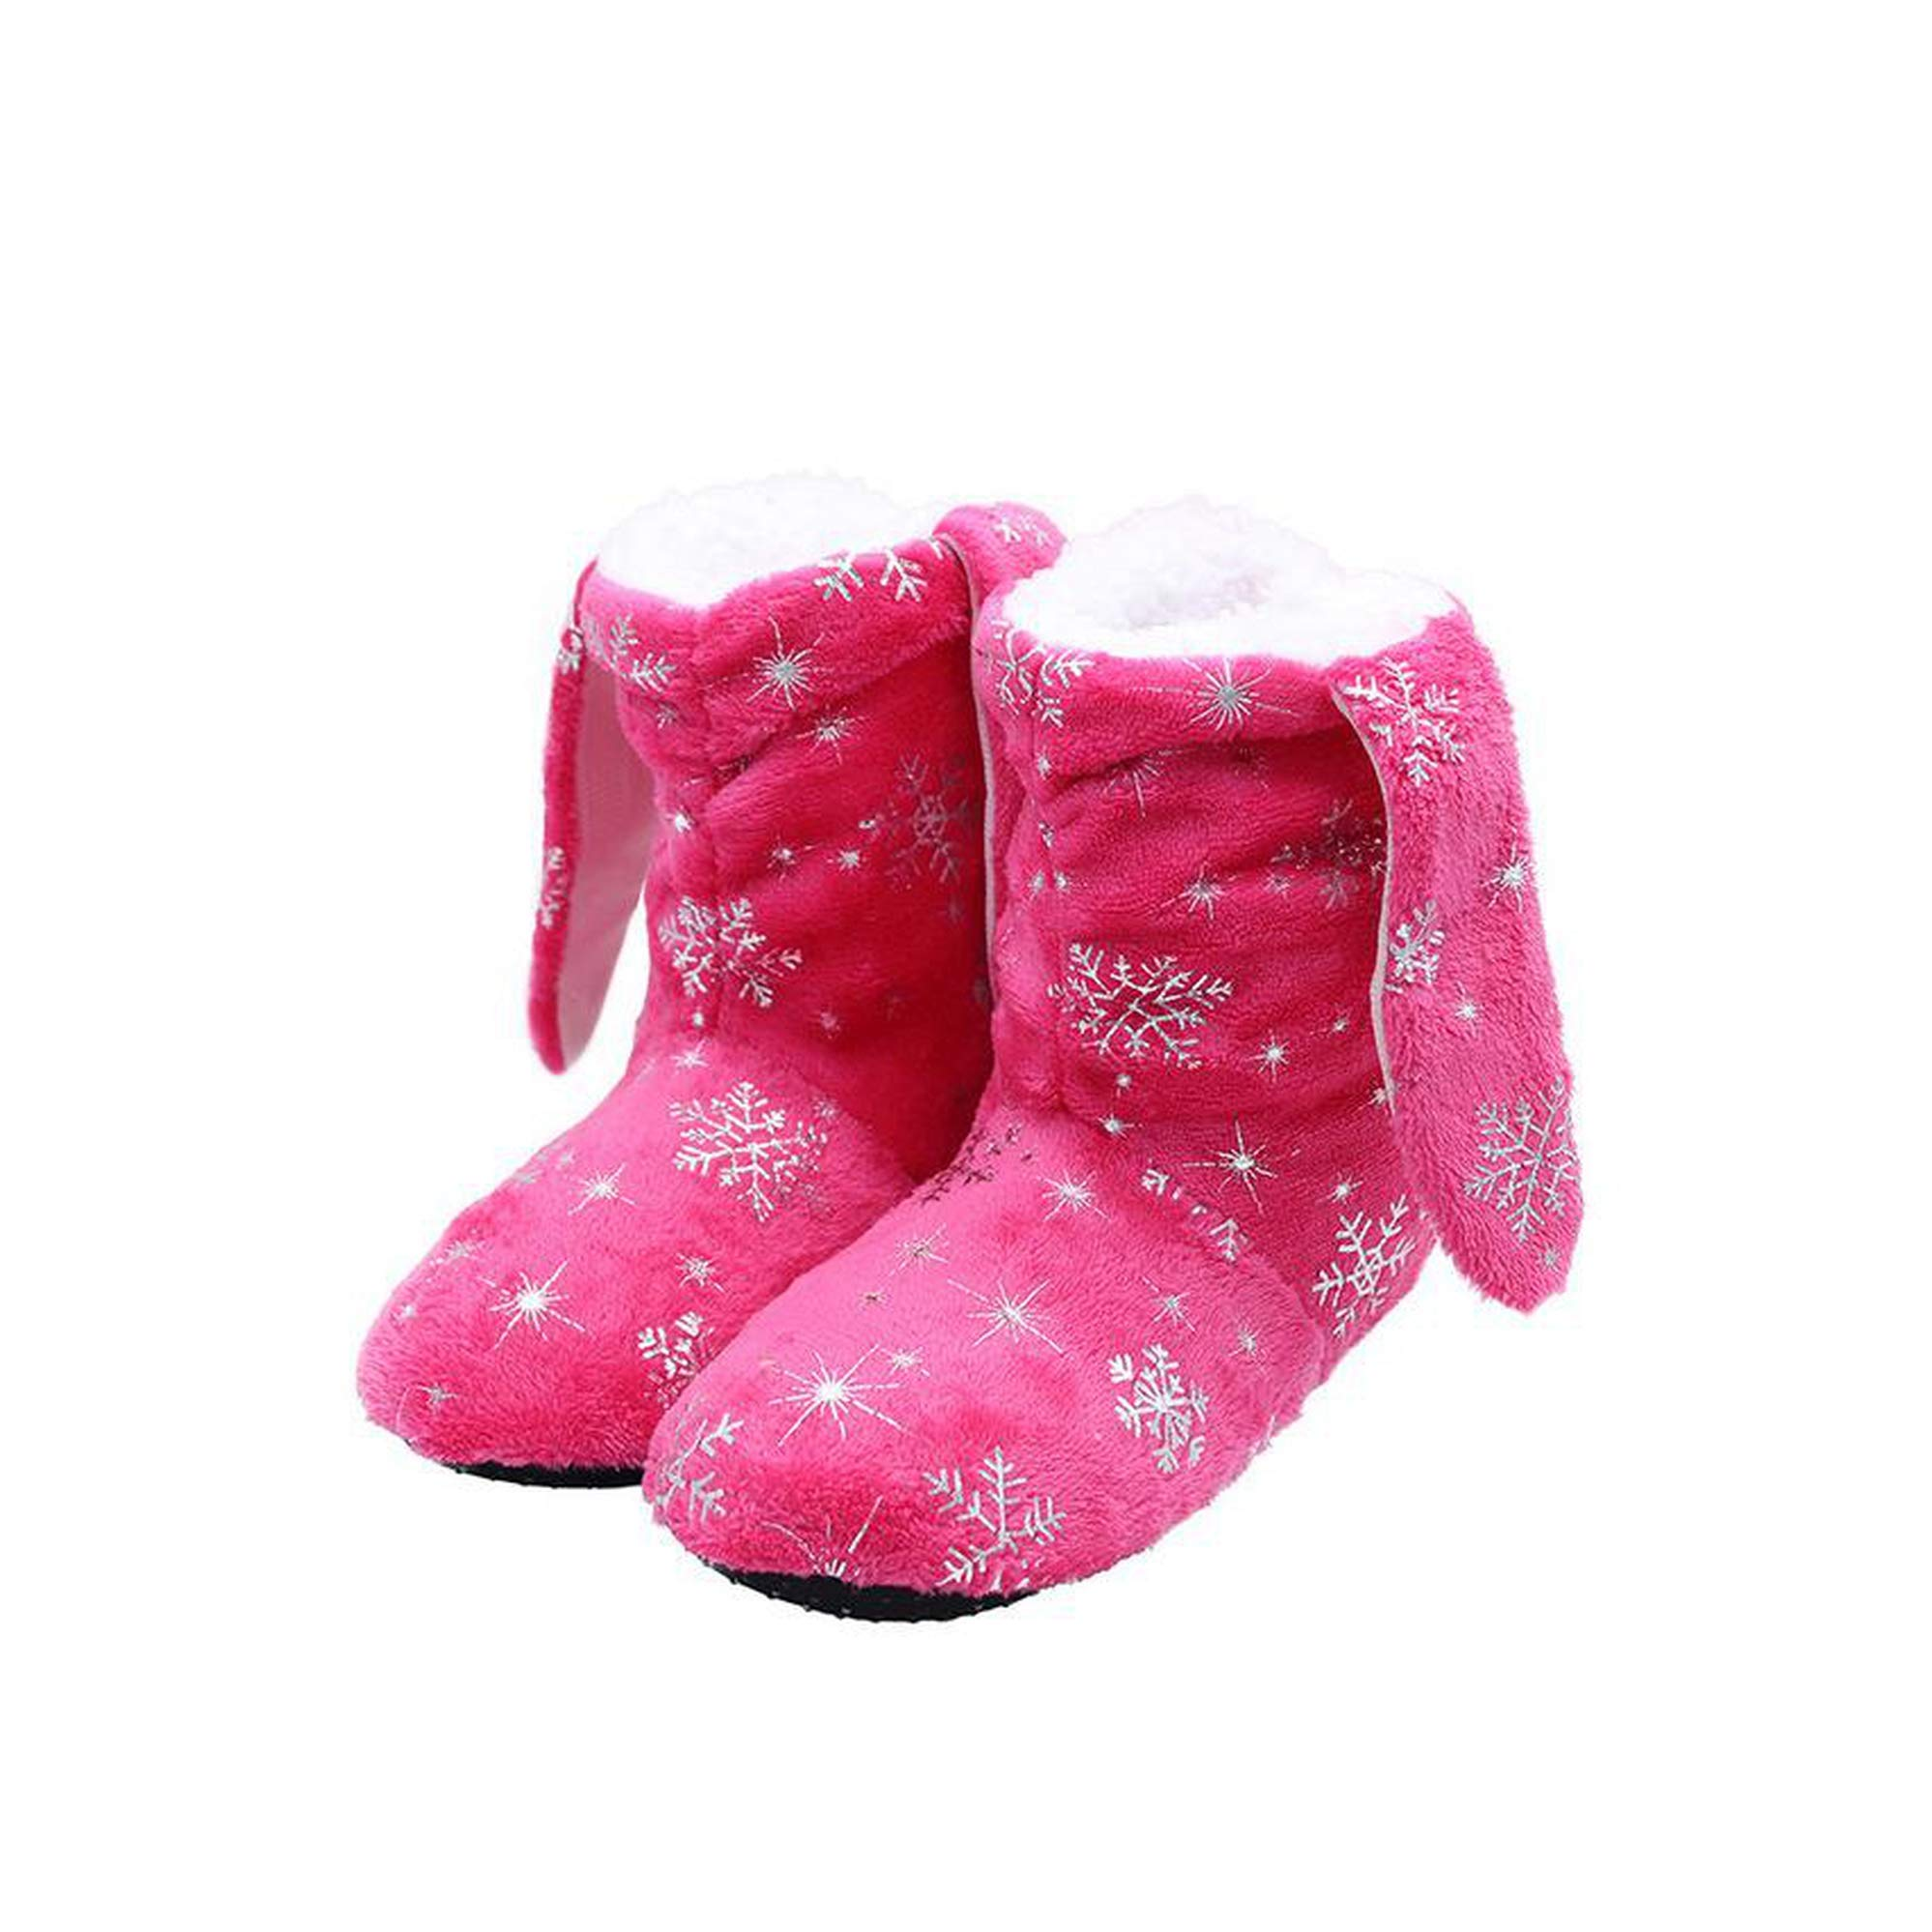 Indoor Shoes Plush Warm Winter Cotton Slippers Fur Slippers Shoes Soft Floor Shoes And Socks Women Men Snow Shoes,pink,6 by Harrypopo slipper-socks